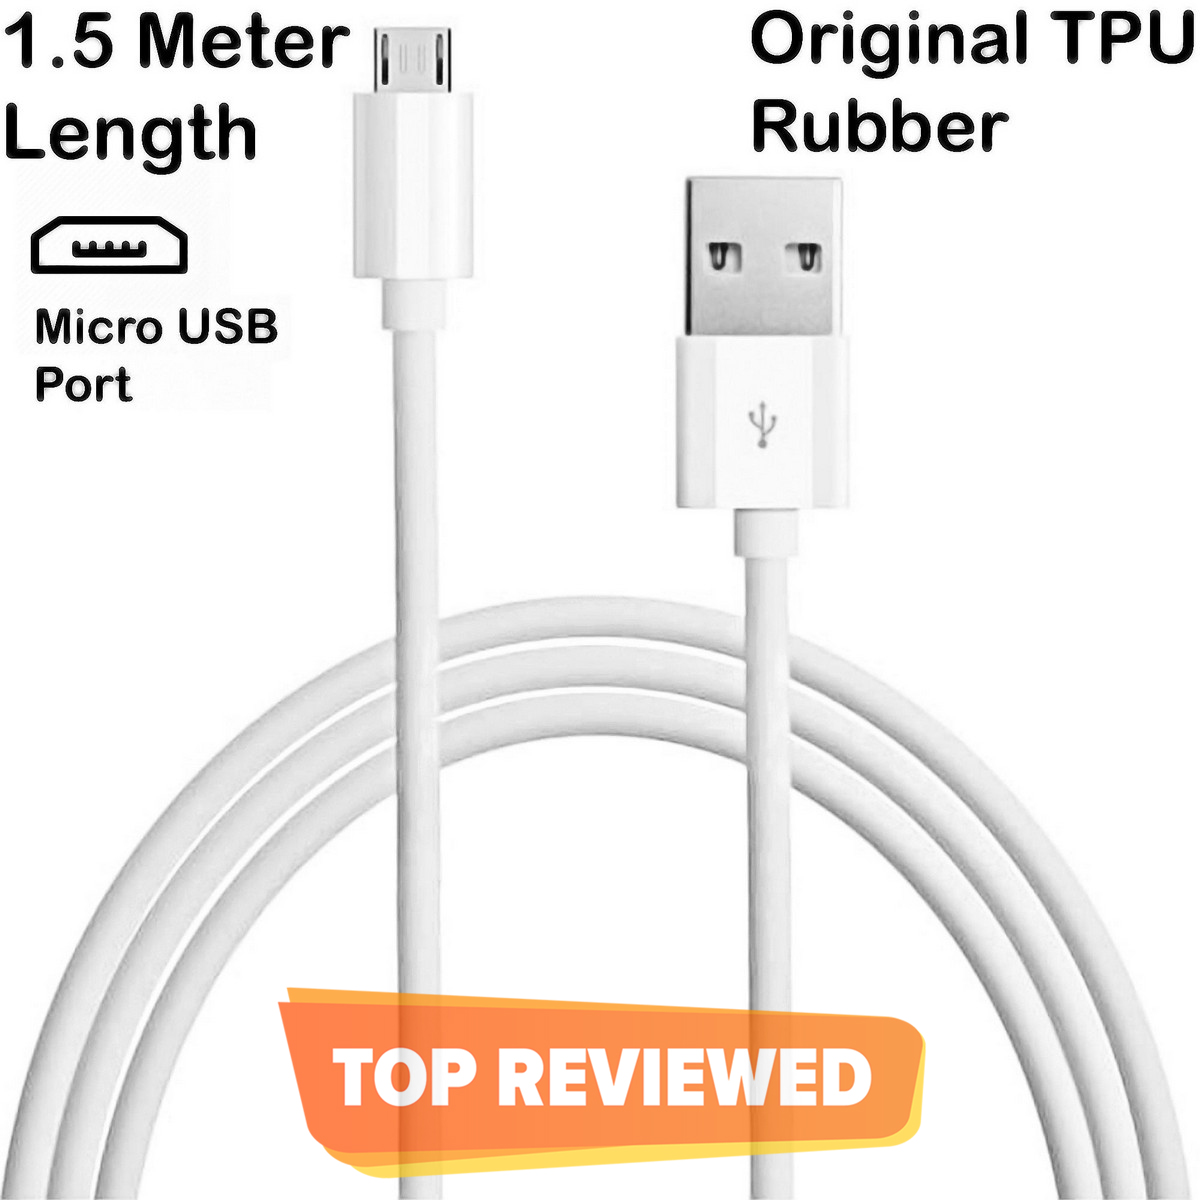 ORIGINAL 1.5 Meter Micro USB Fast Charging + Data Cable / Sync Cable For Samsung / HTC / Infinix / Xiaomi / Oppo / Huawei / Nokia / Lenovo / Android Phones - White